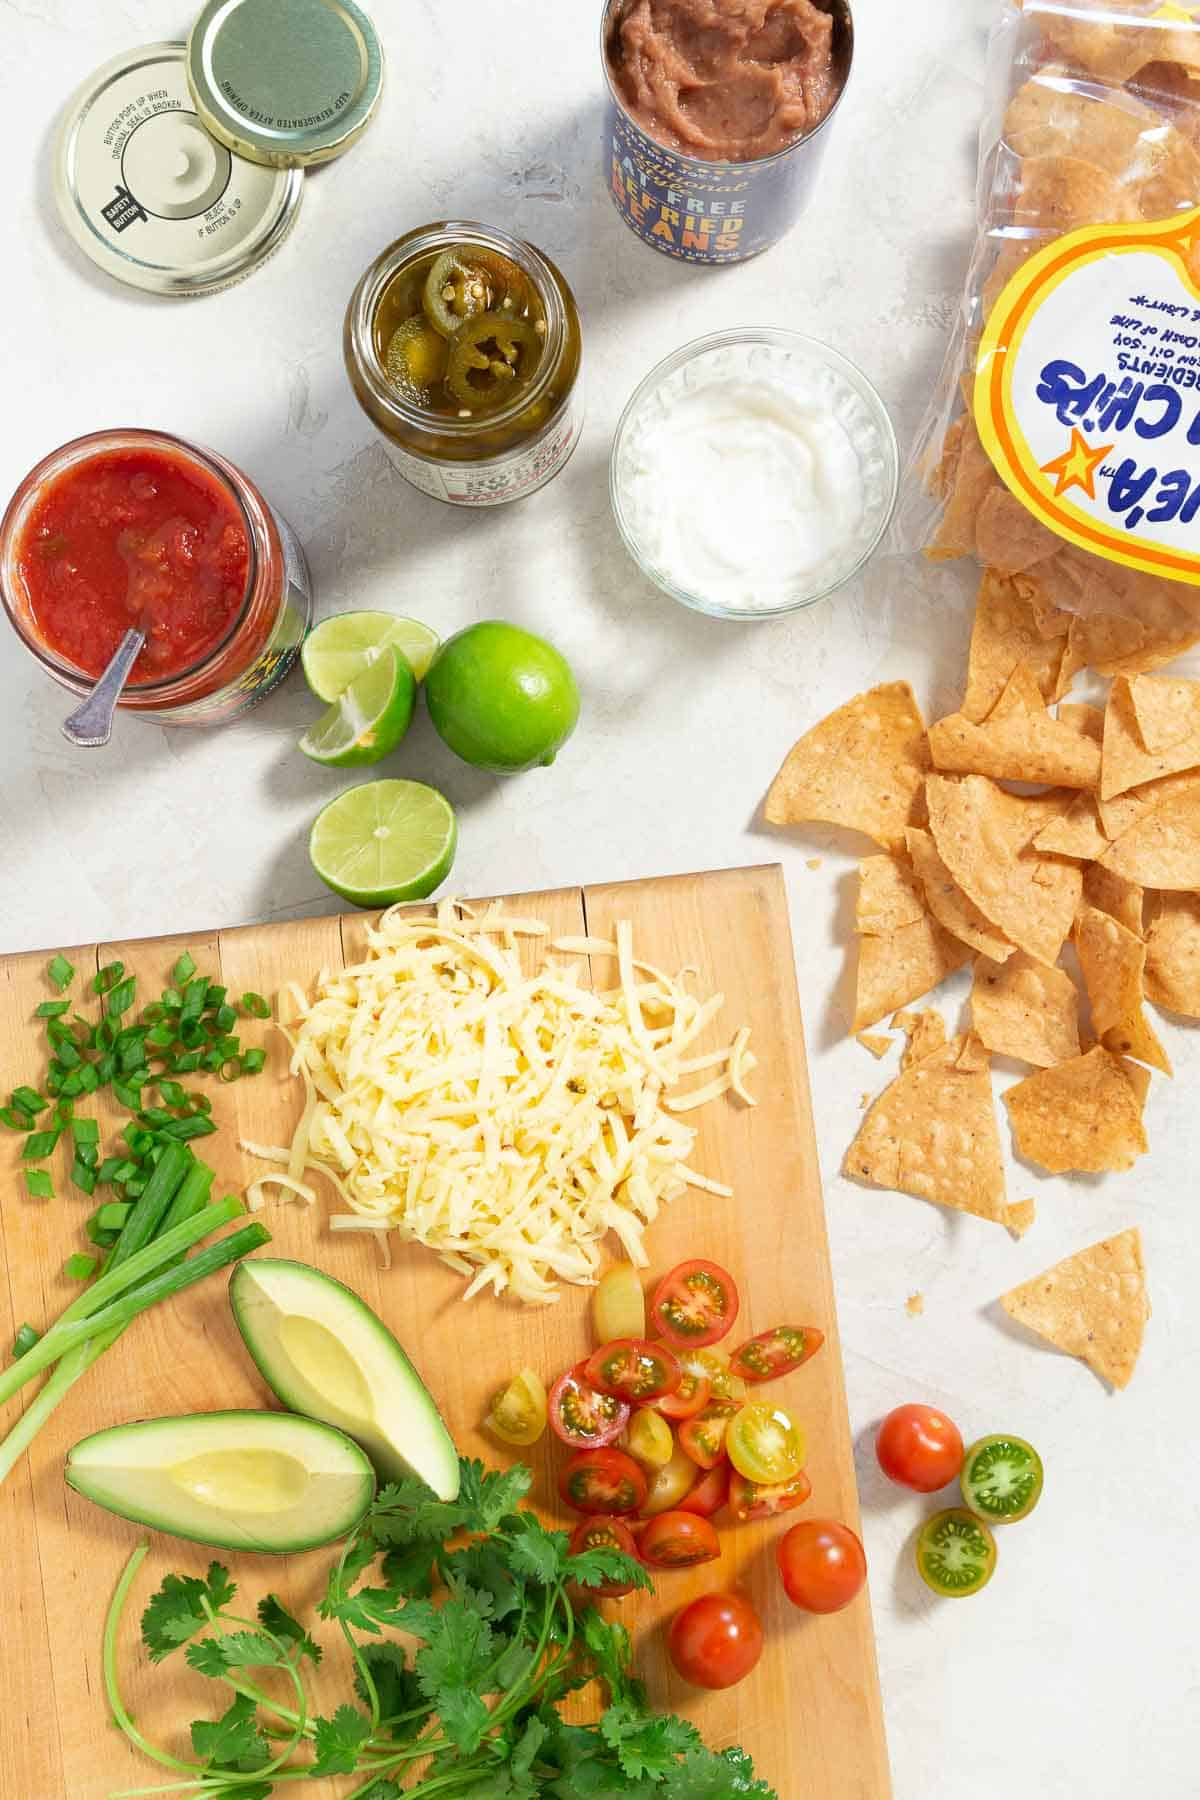 Nacho ingredients on a white counter top and wood cutting board.